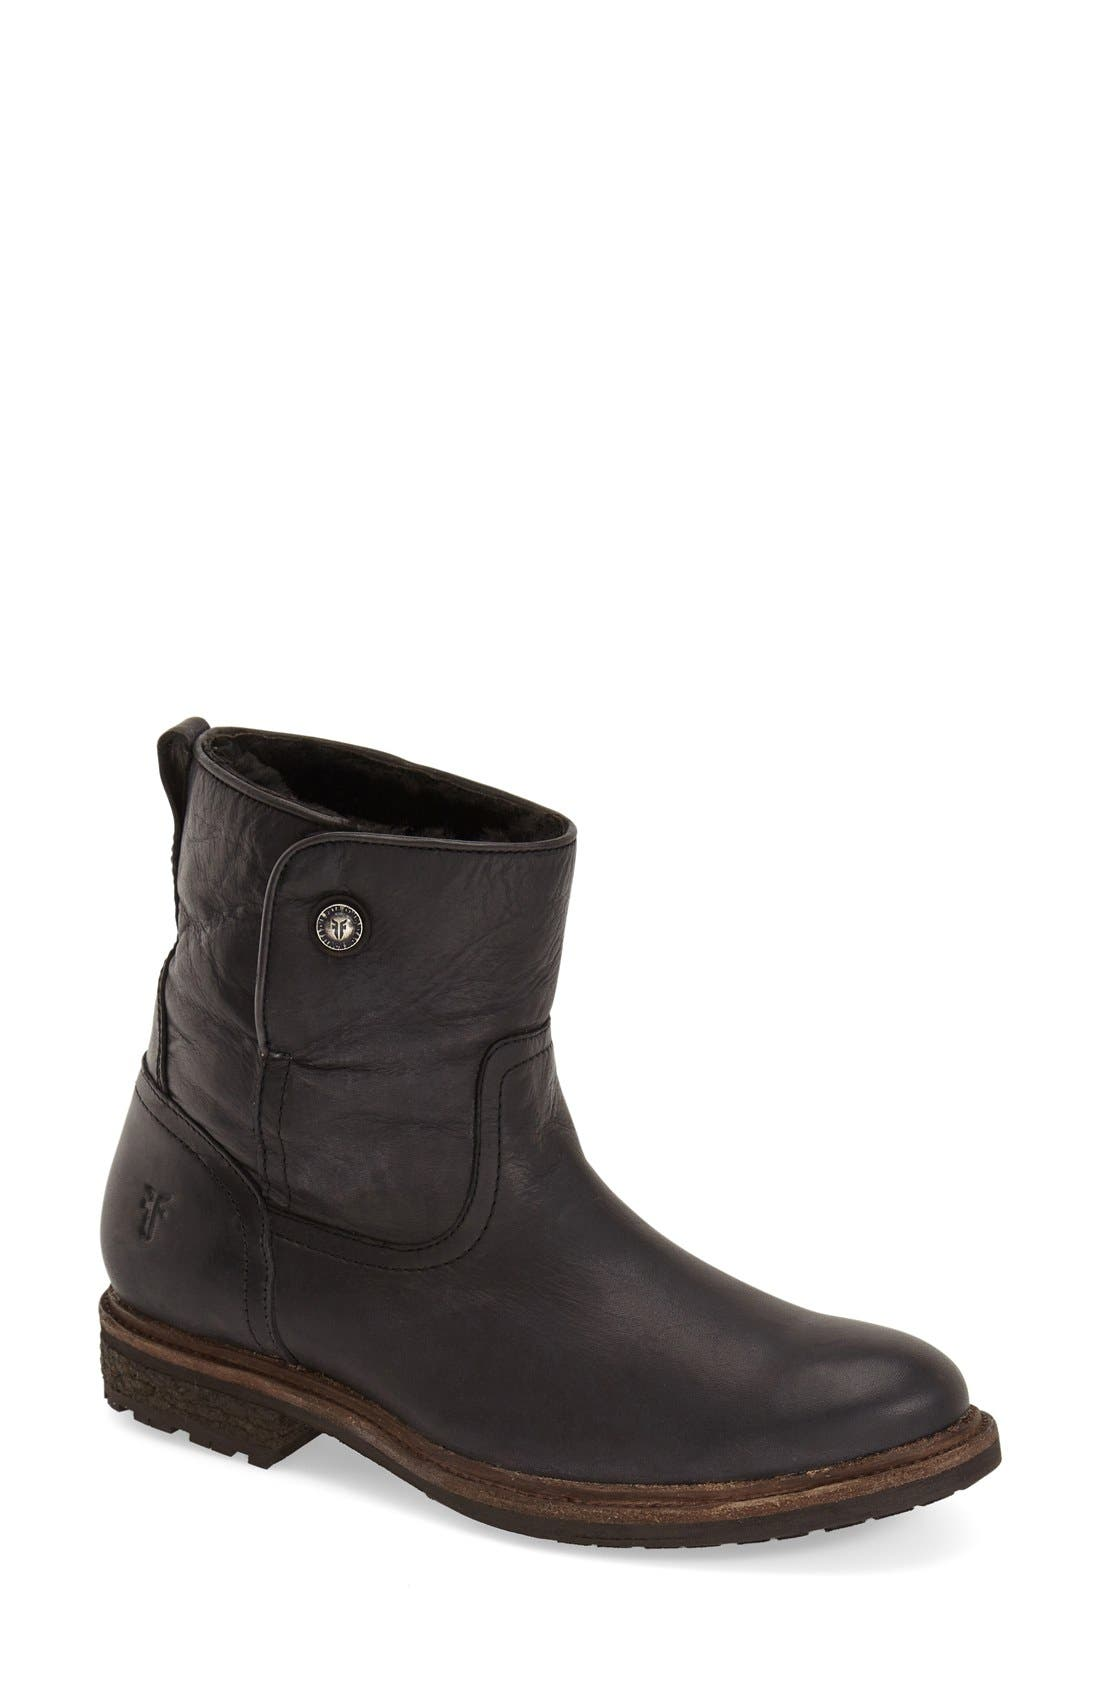 'Mara' Button Genuine Shearling Lined Short Boot, Main, color, 001